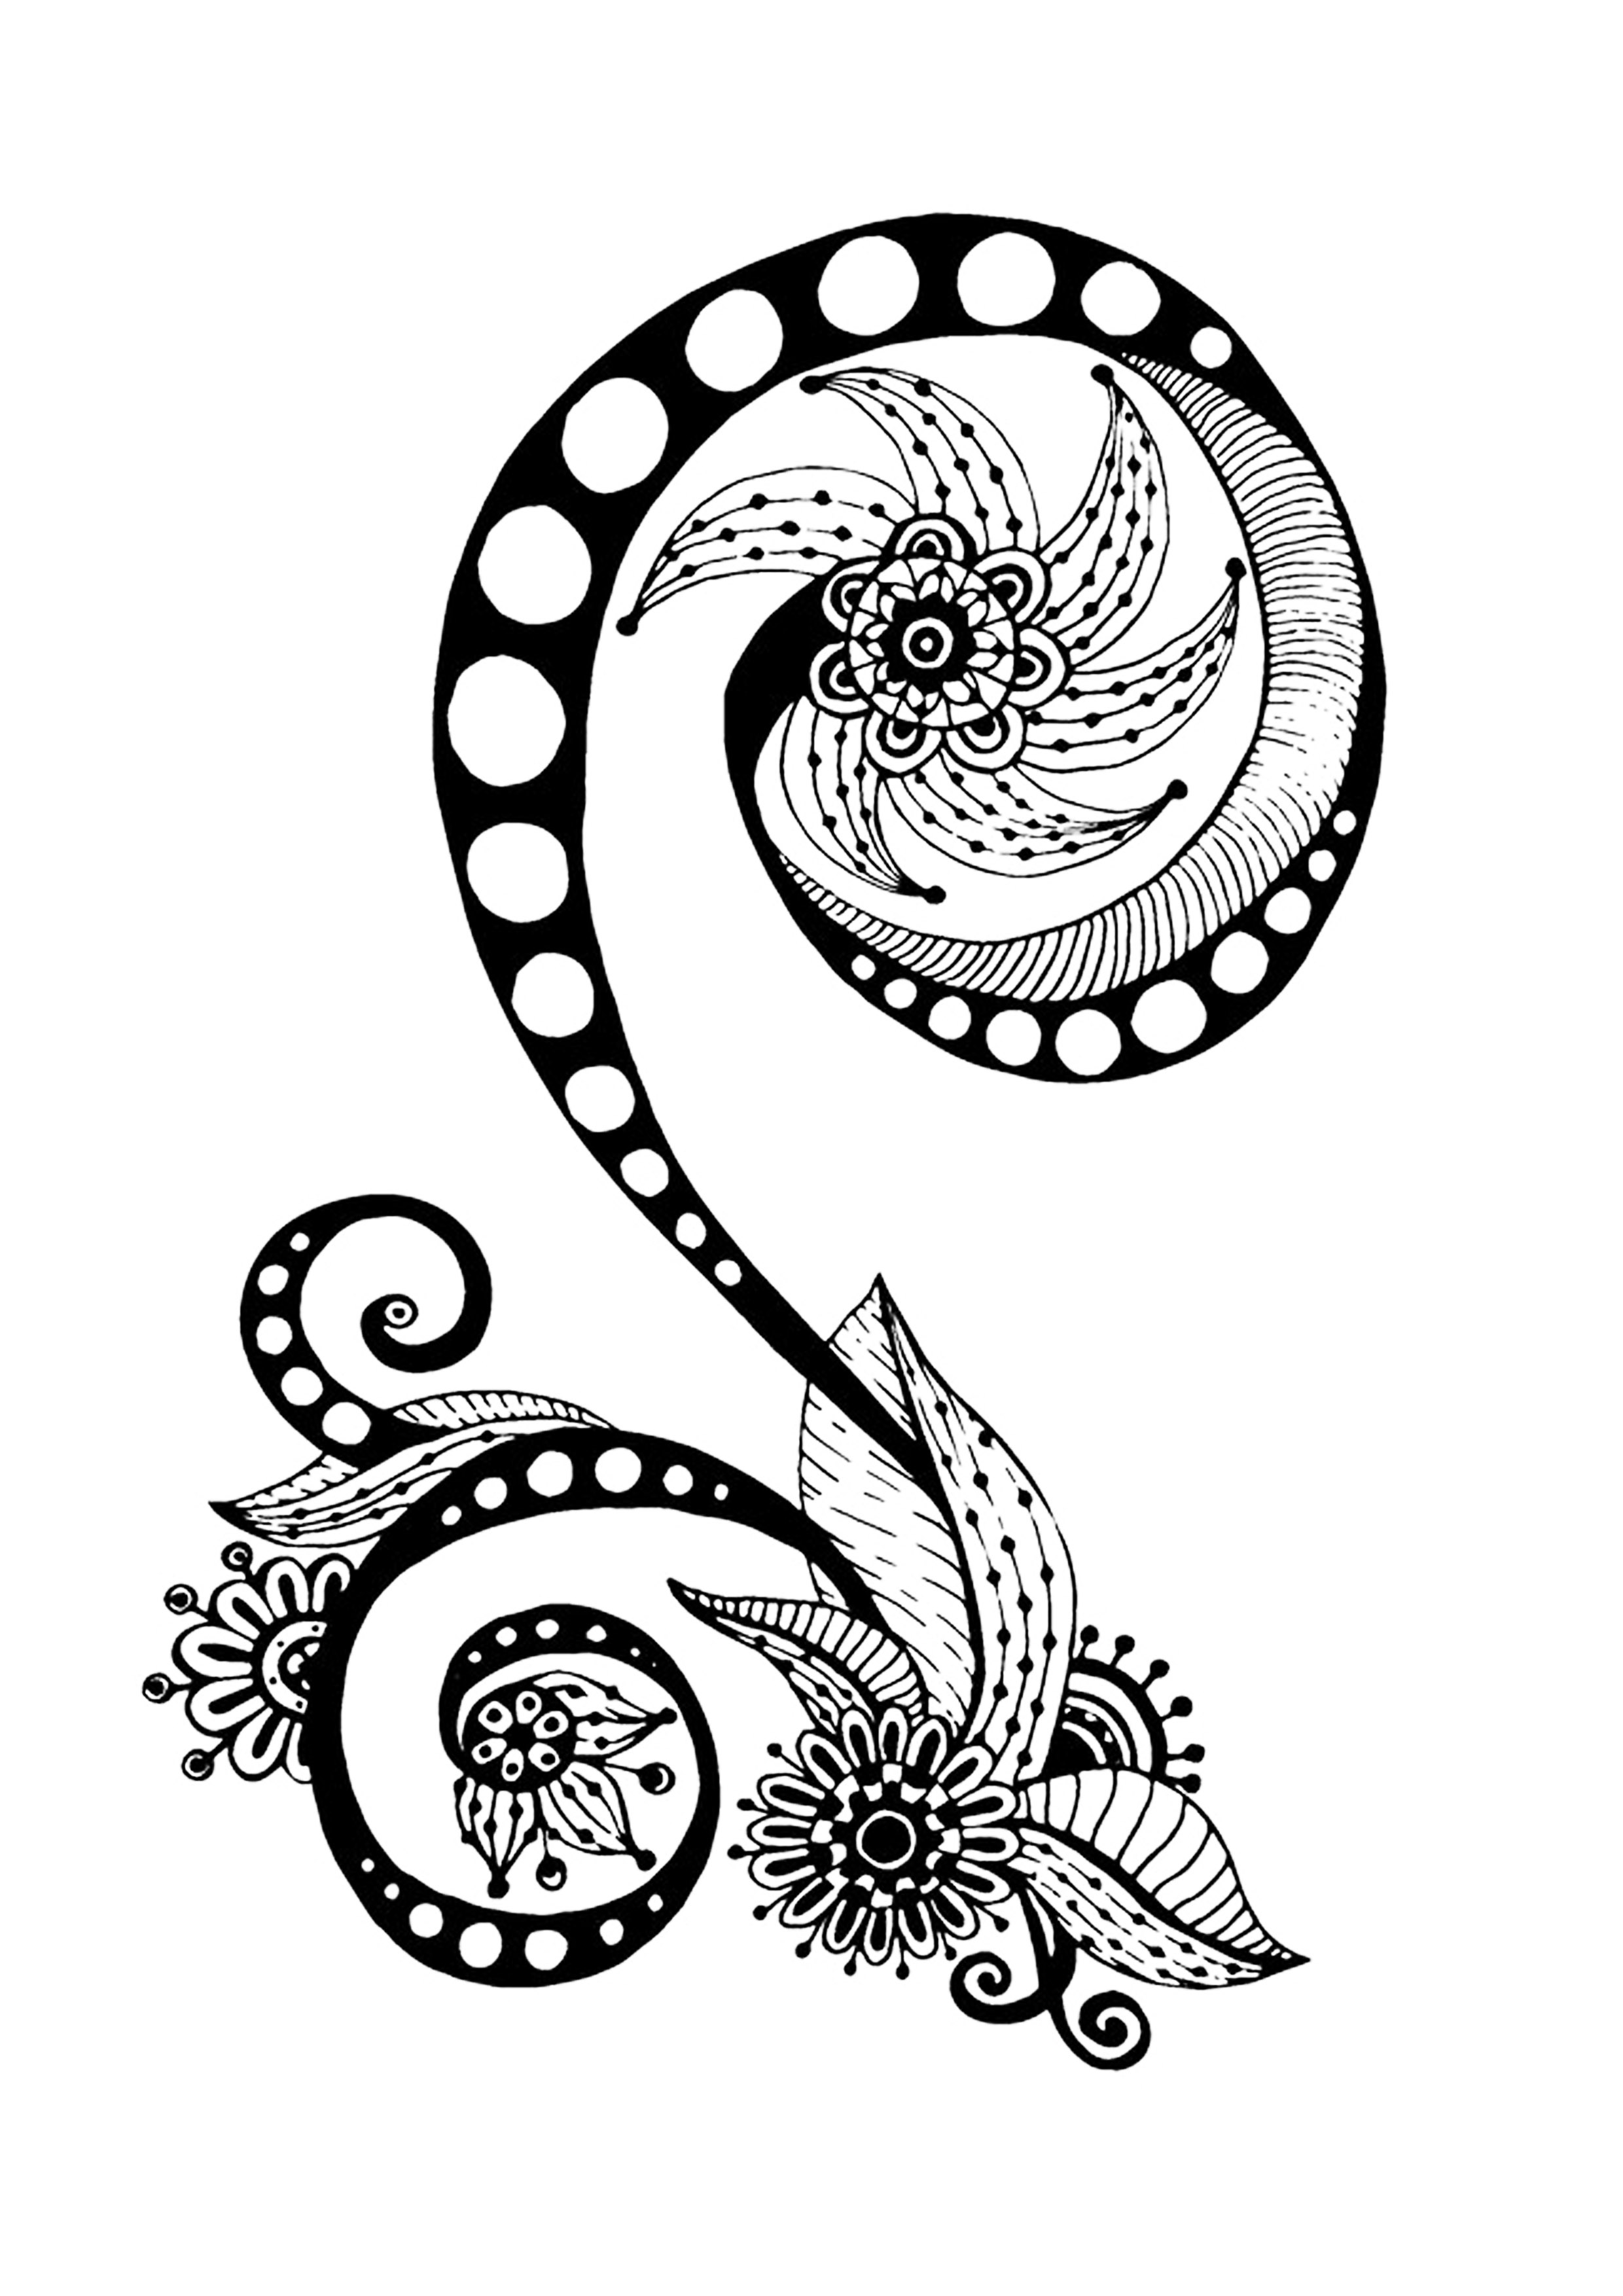 Free Zen Coloring Pages At Getdrawings Com Free For Personal Use